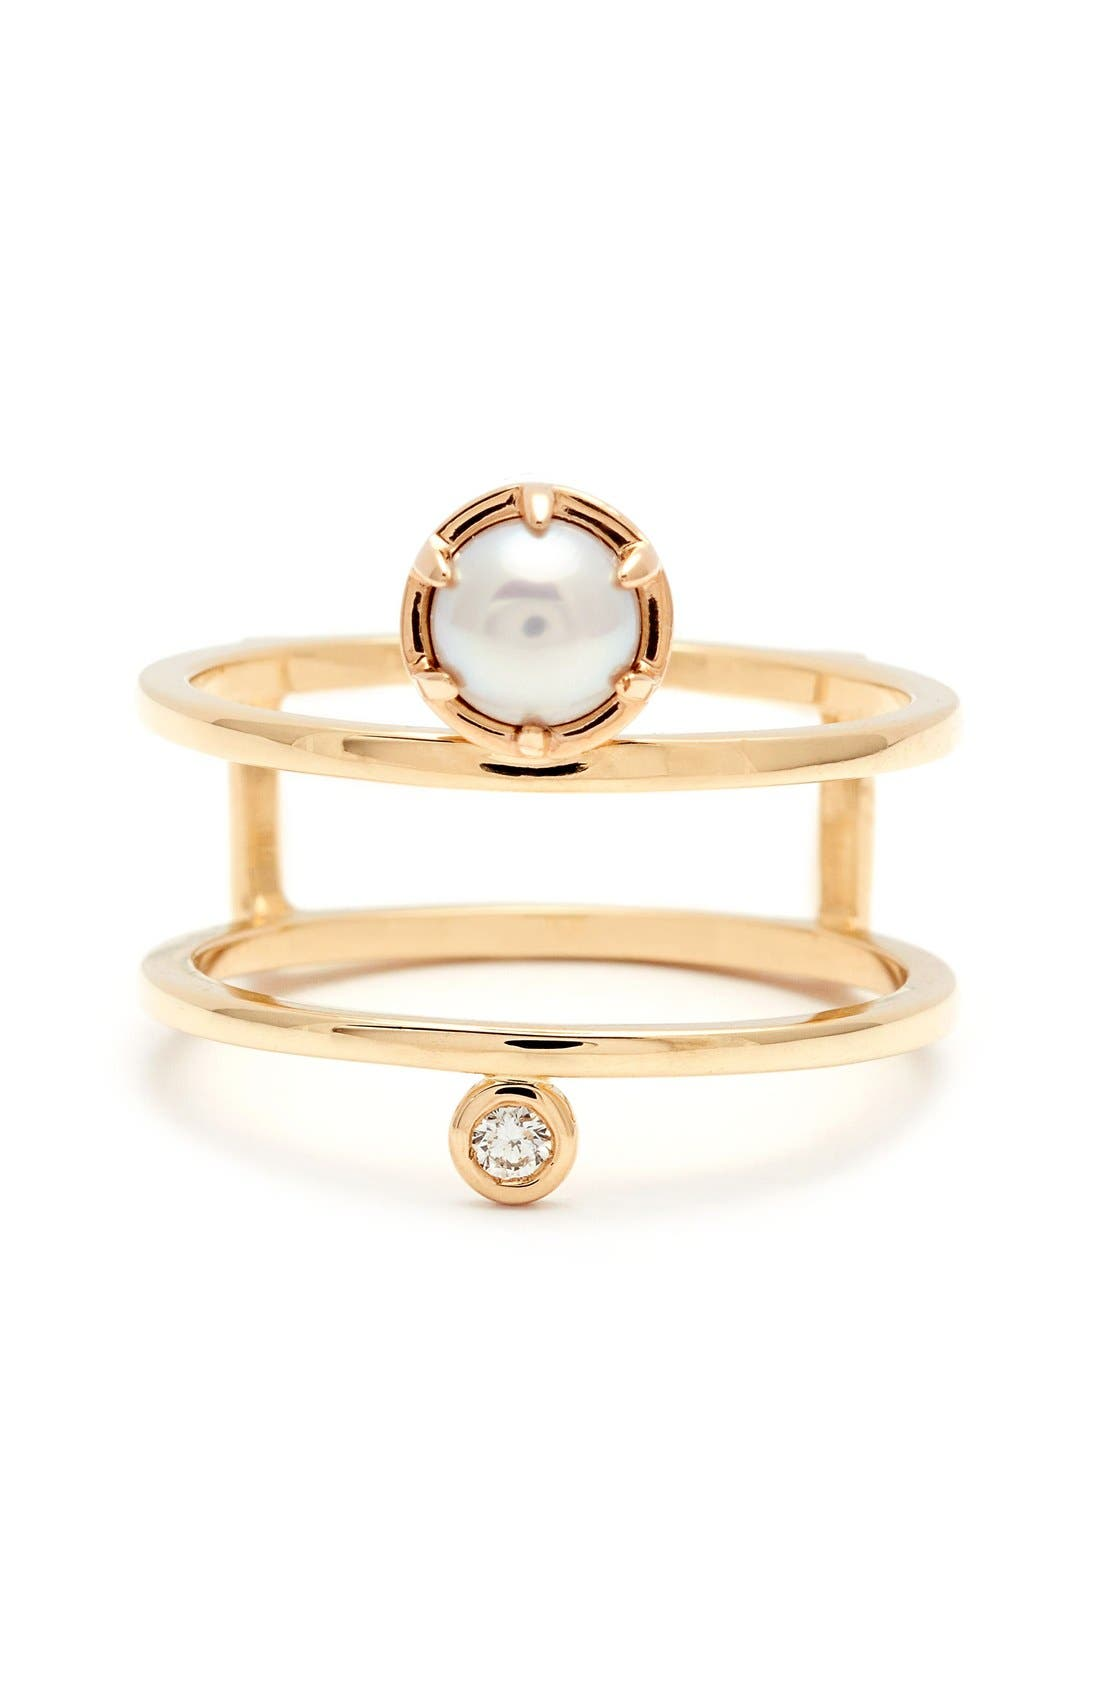 'Reverse Attelage' Double Band Pearl & Diamond Ring,                         Main,                         color, YELLOW/ GOLD/ WHITE